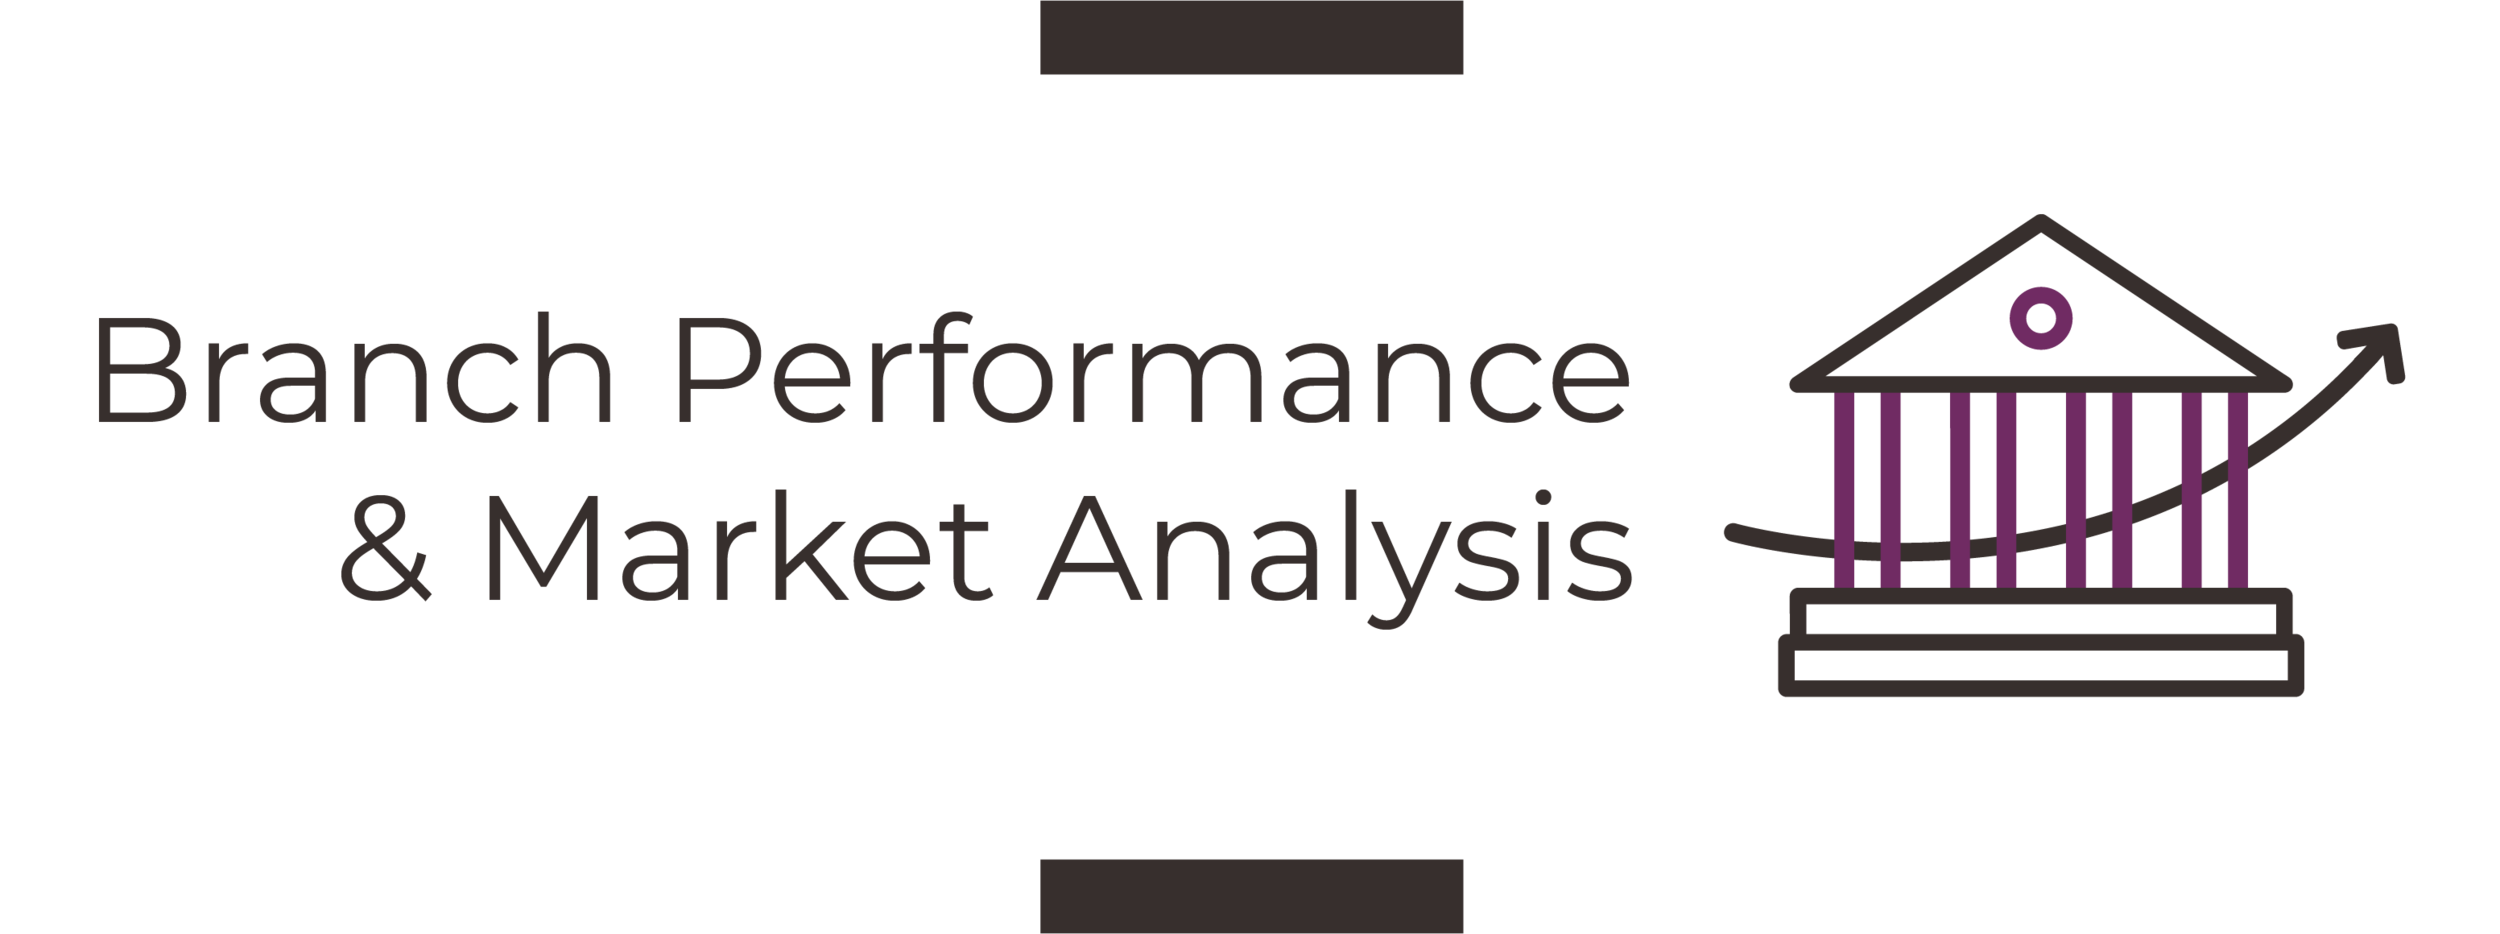 Branch Performance & Market Analysis